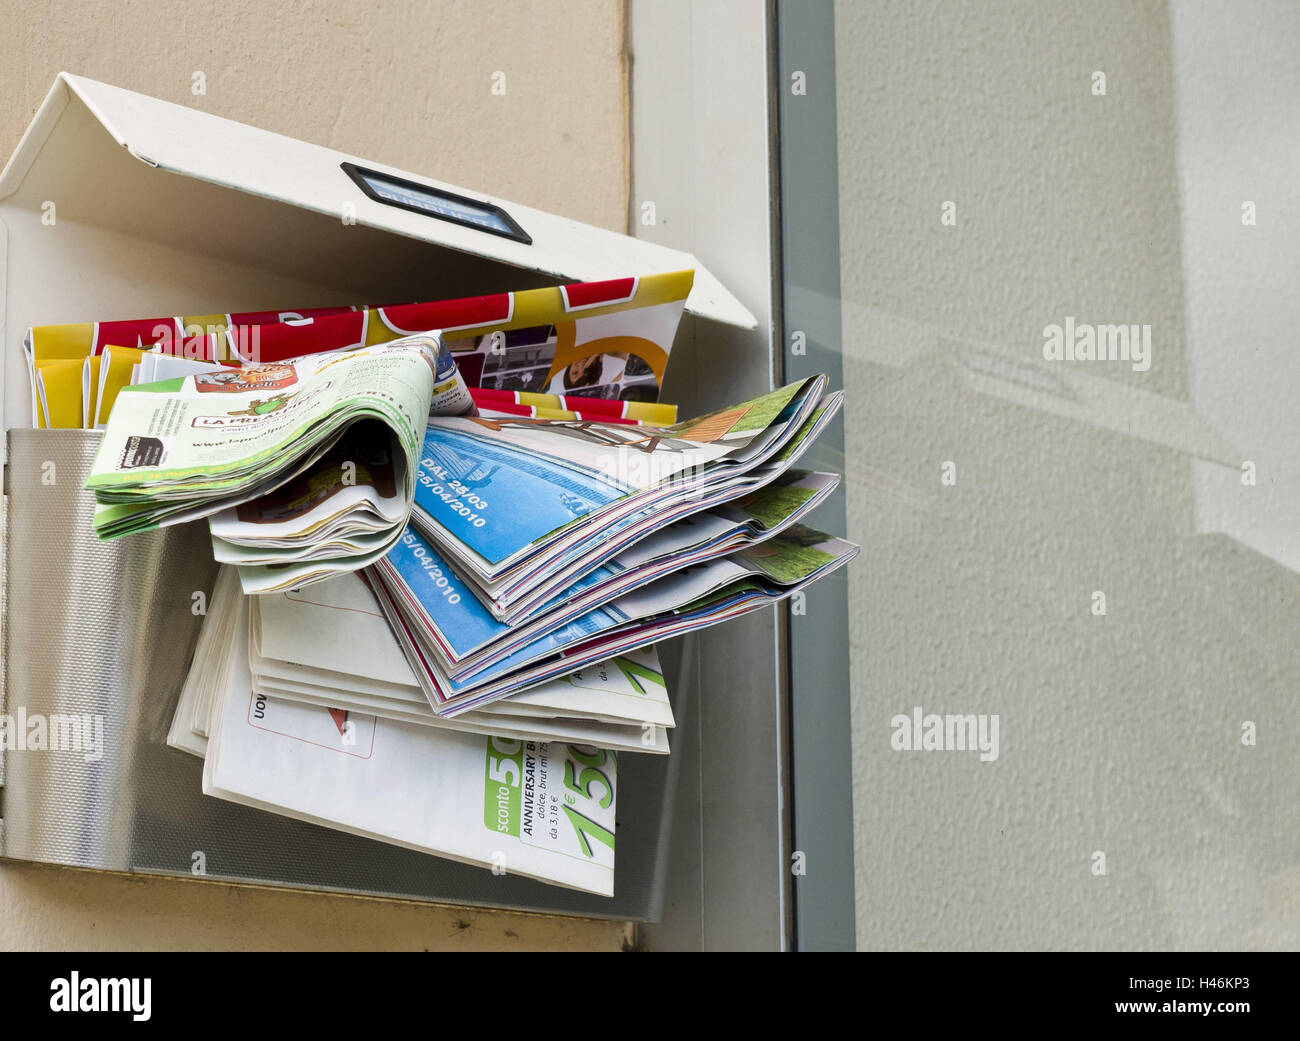 Mailbox, brochures, Italy, Liguria, - Stock Image